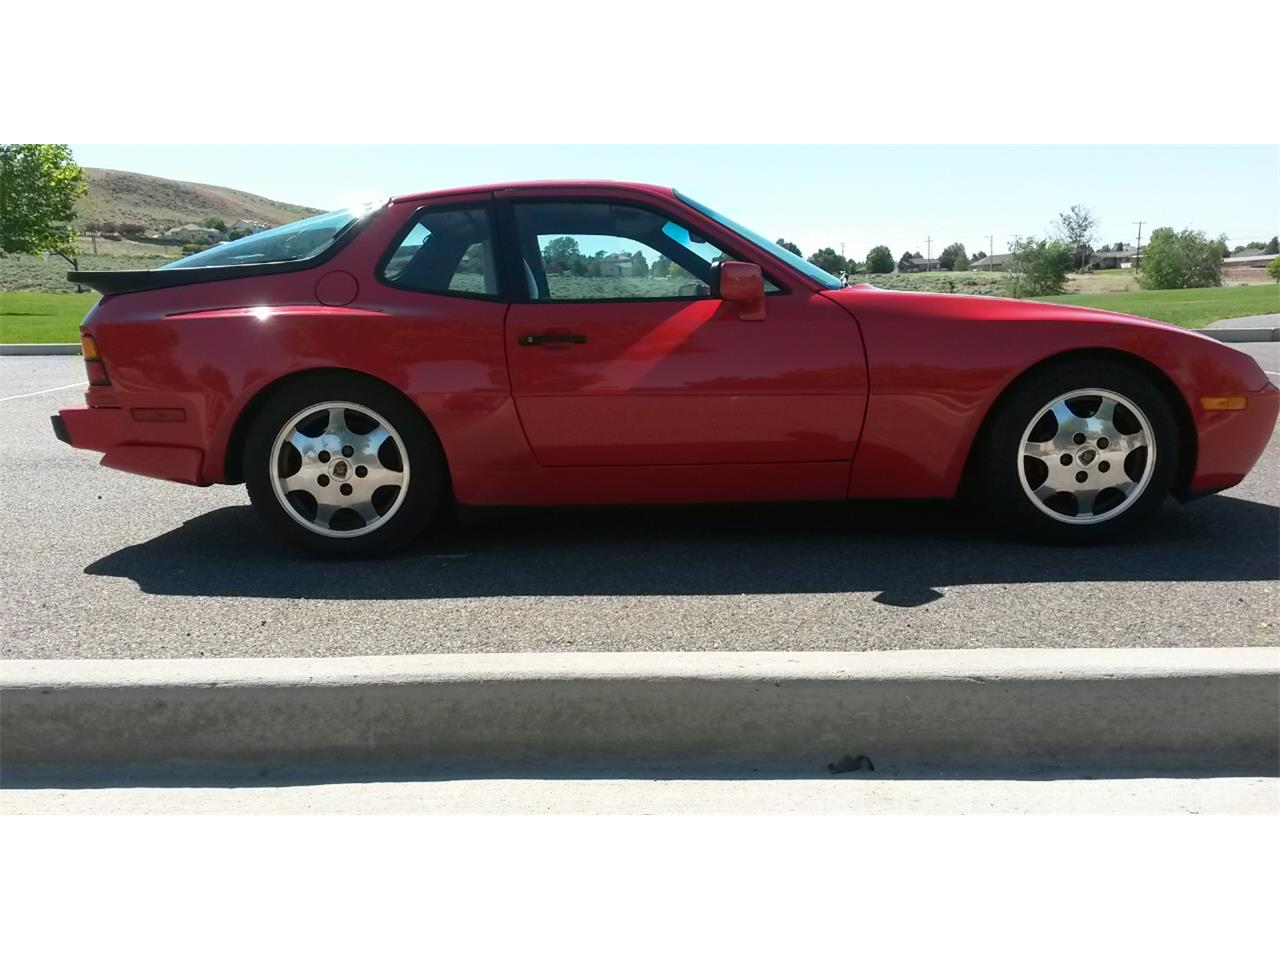 Large Picture of 1989 Porsche 944S2 located in Kennewick Washington - $25,000.00 Offered by a Private Seller - L7PM